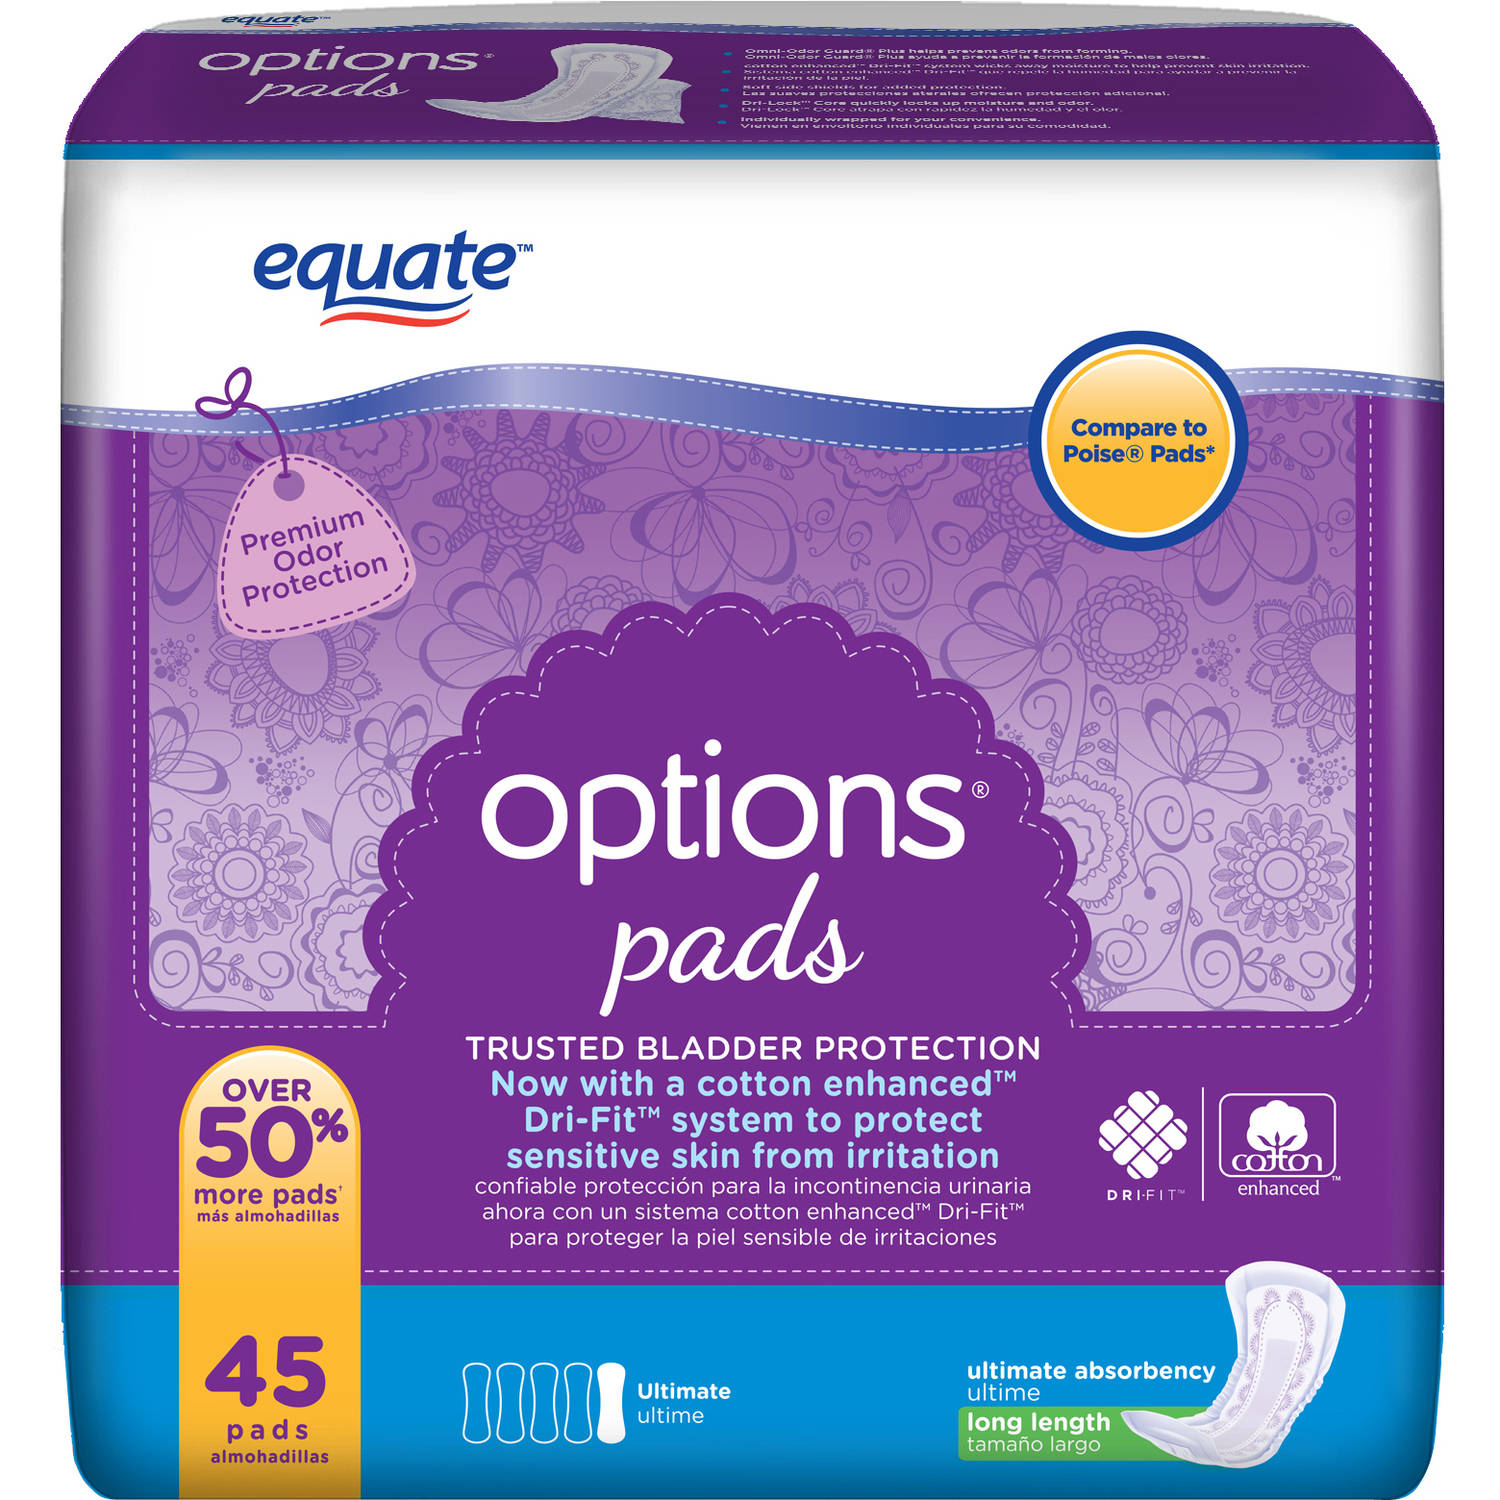 Equate Options Ultimate Long Length Incontinence Pads, 45 count